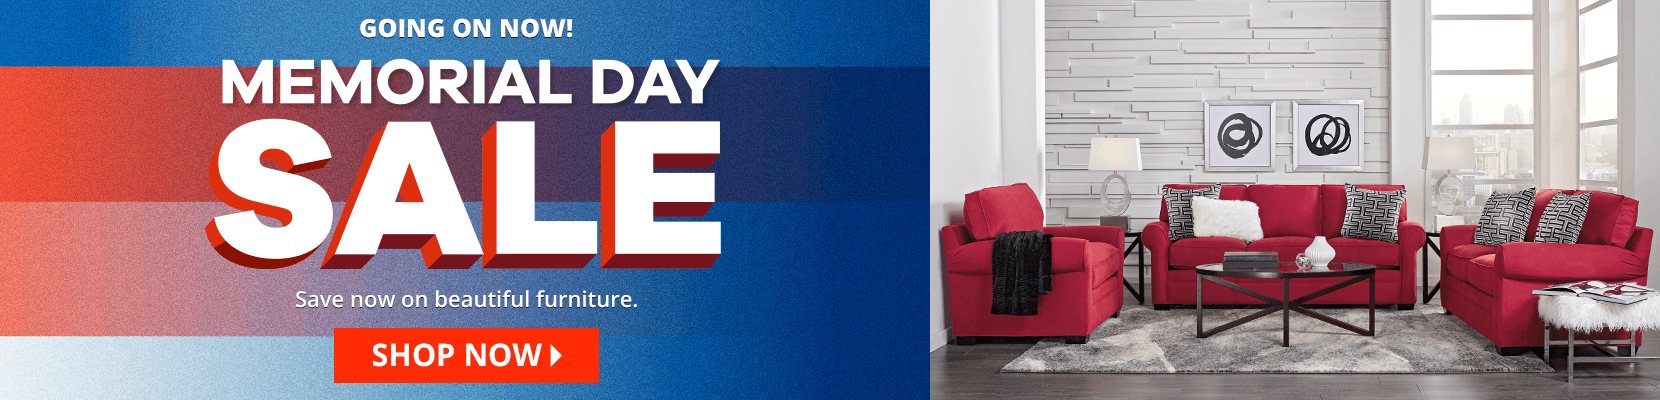 going on now. memorial day sale. save now on beautiful furniture. shop now